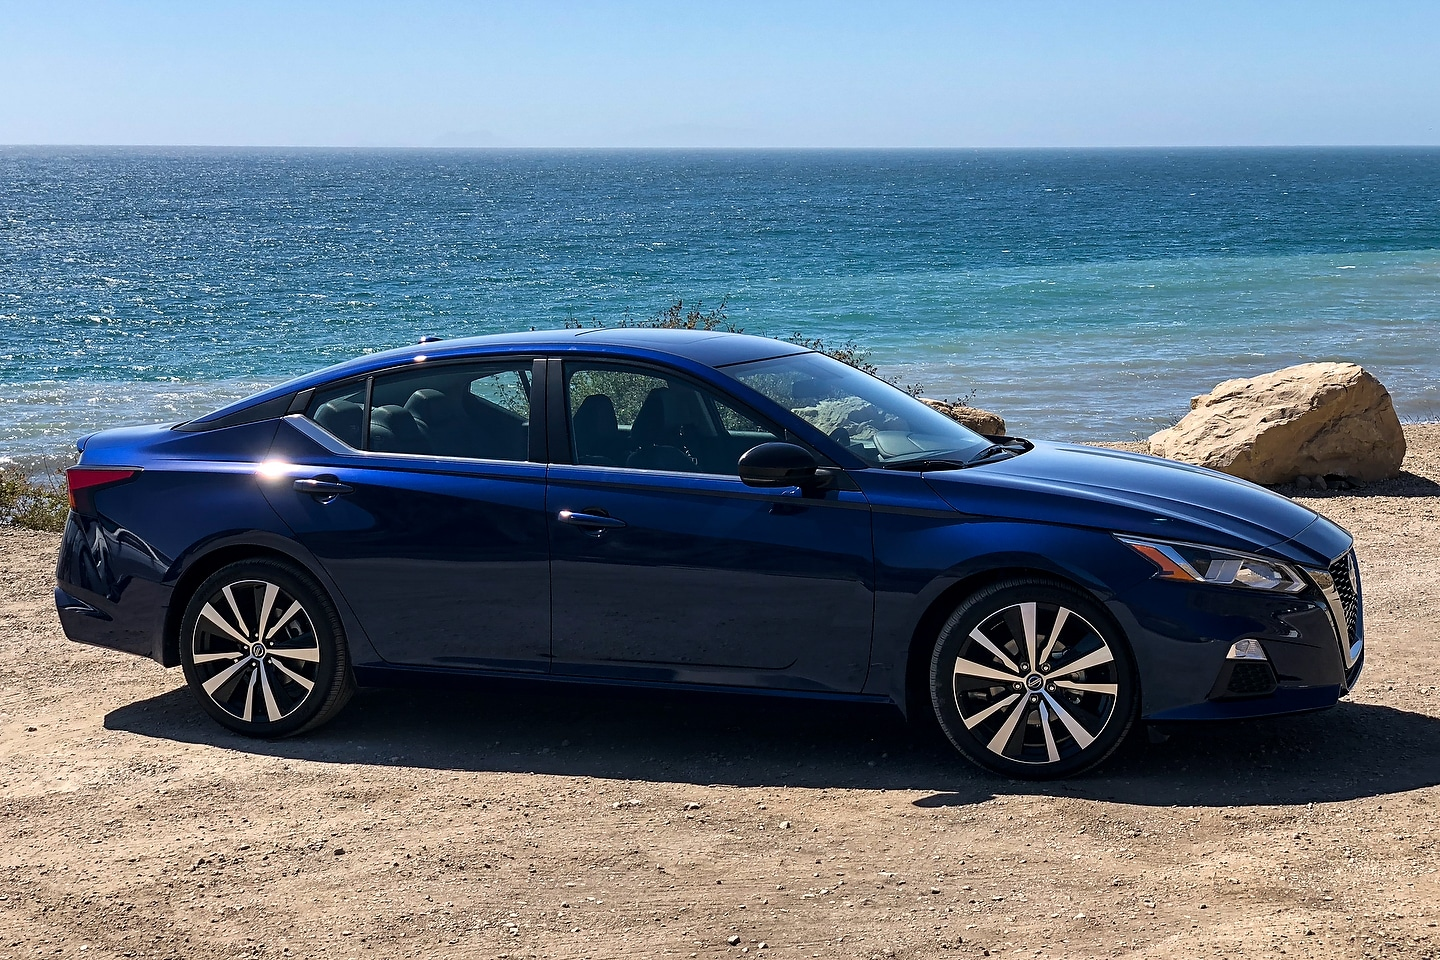 Honda Accord Vs Toyota Camry >> 2019 Nissan Altima First Review - Motor Illustrated